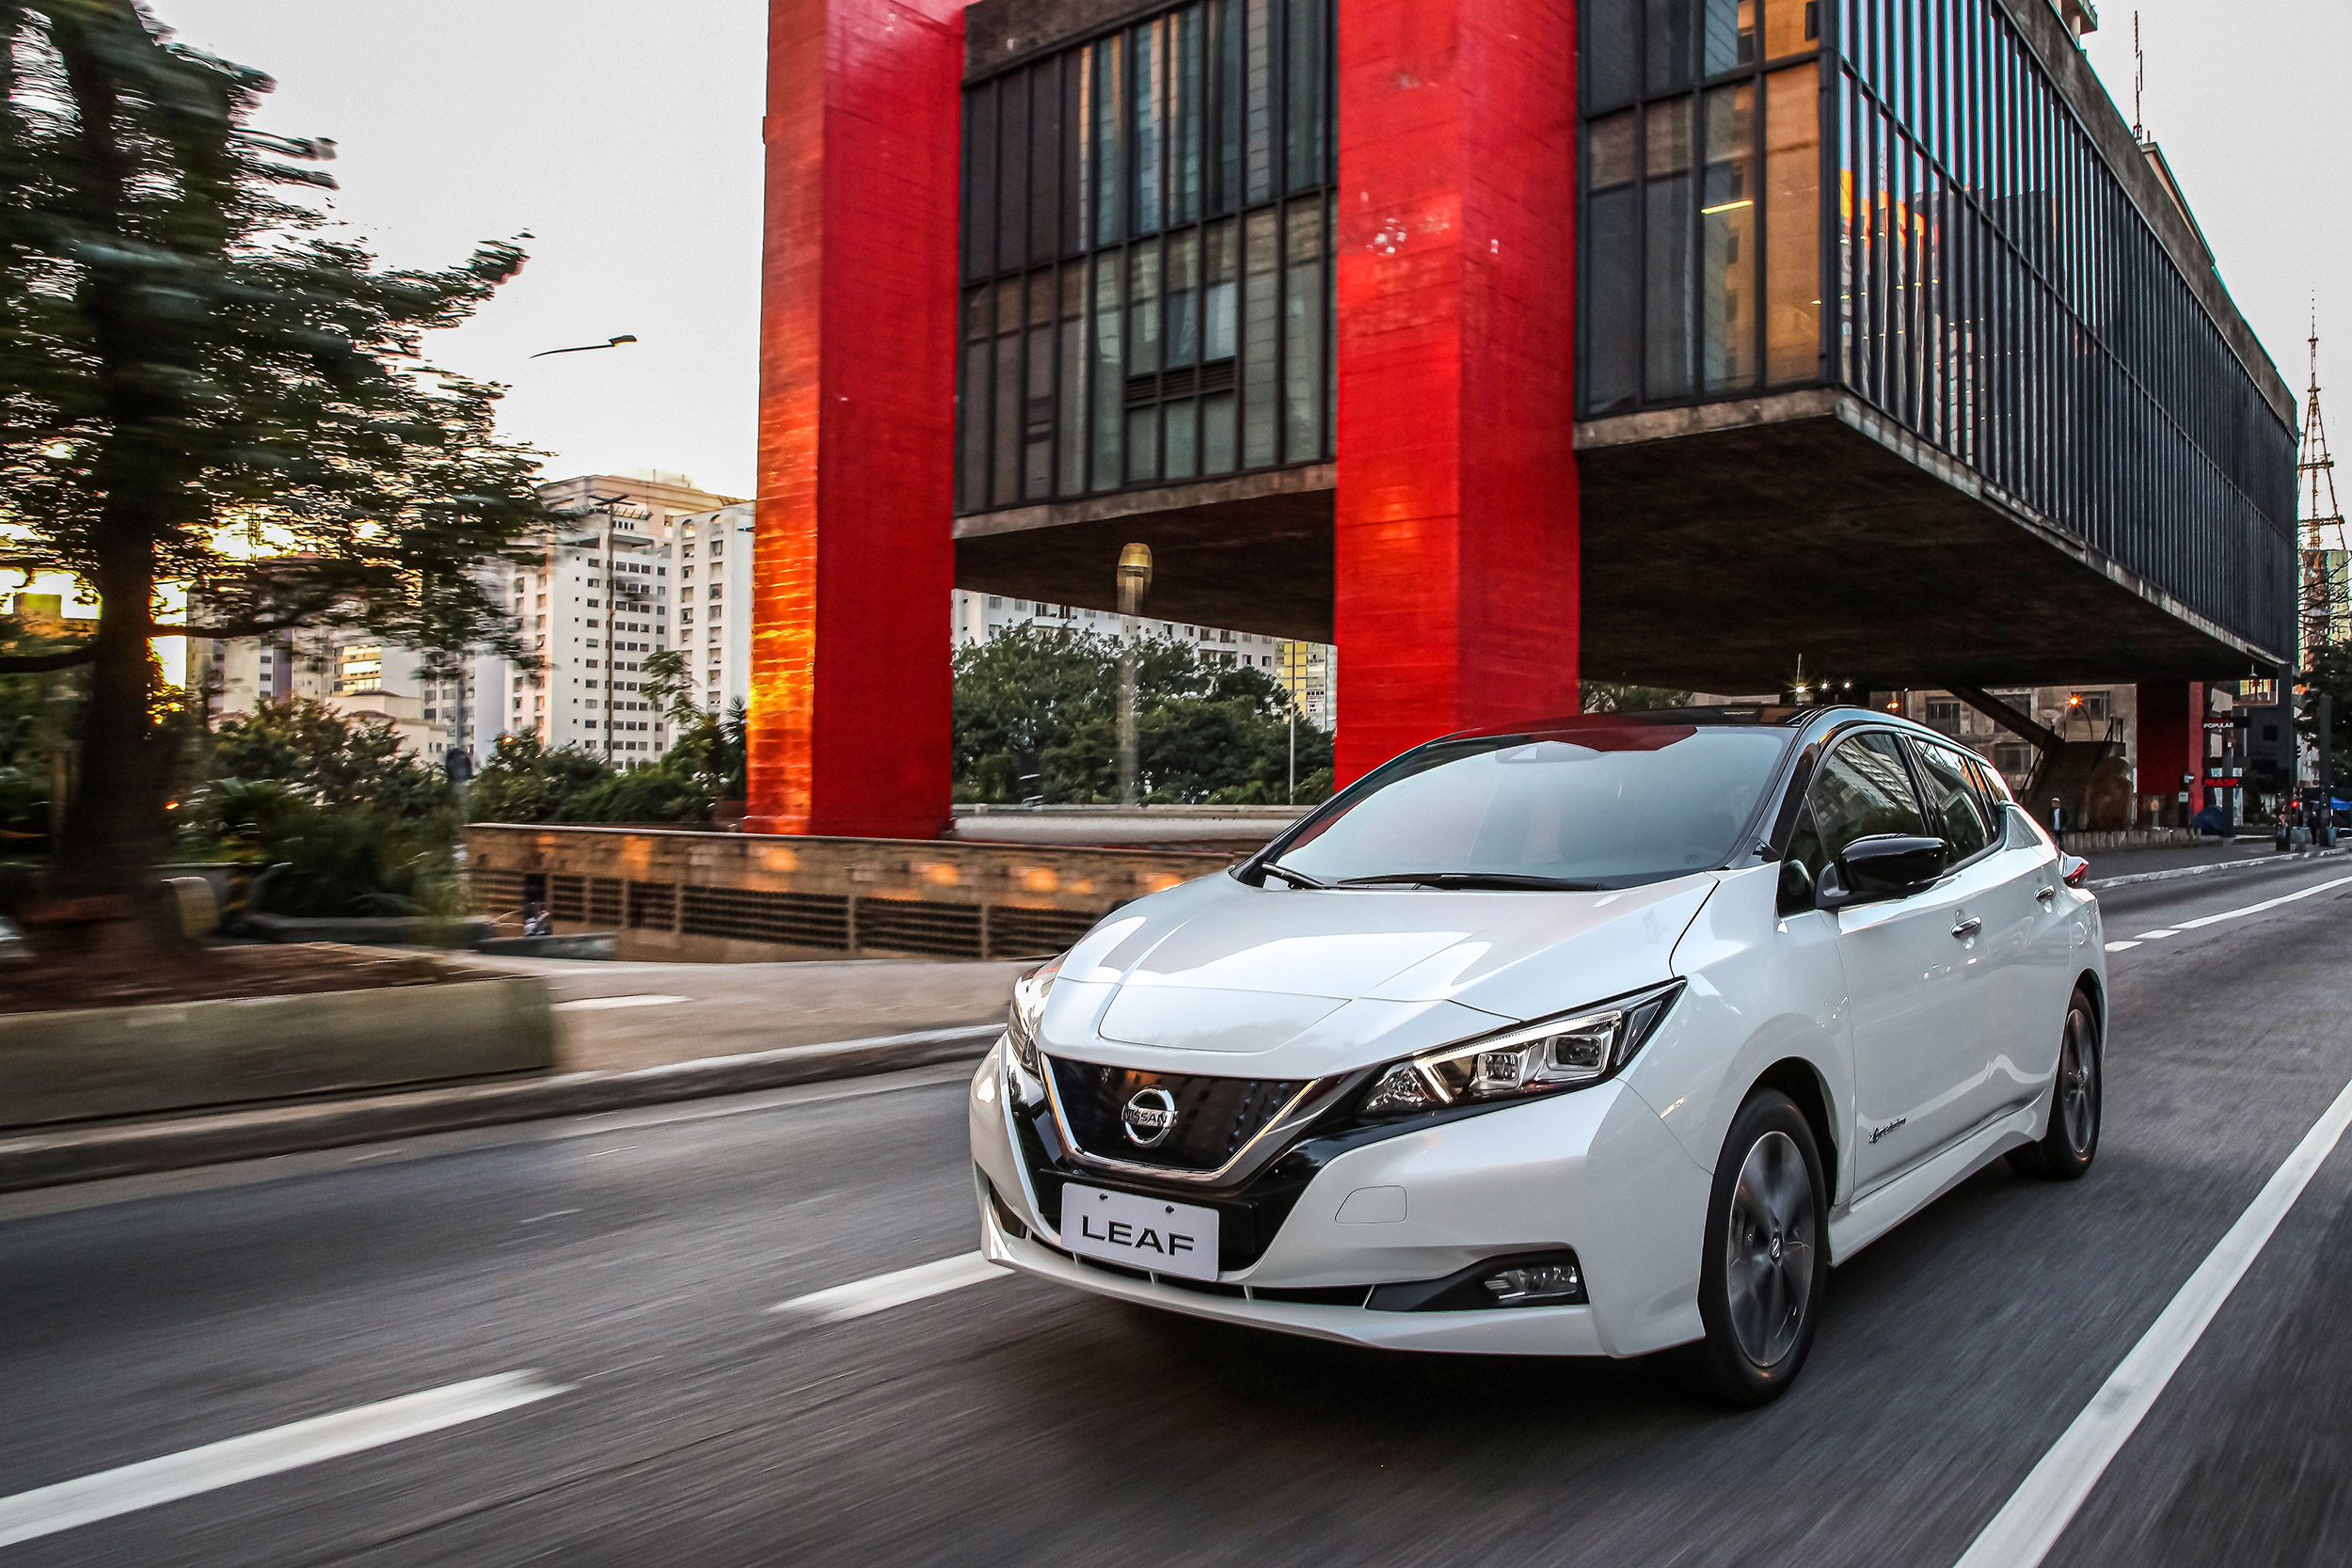 Nissan contributes to sustainable energy and mobility